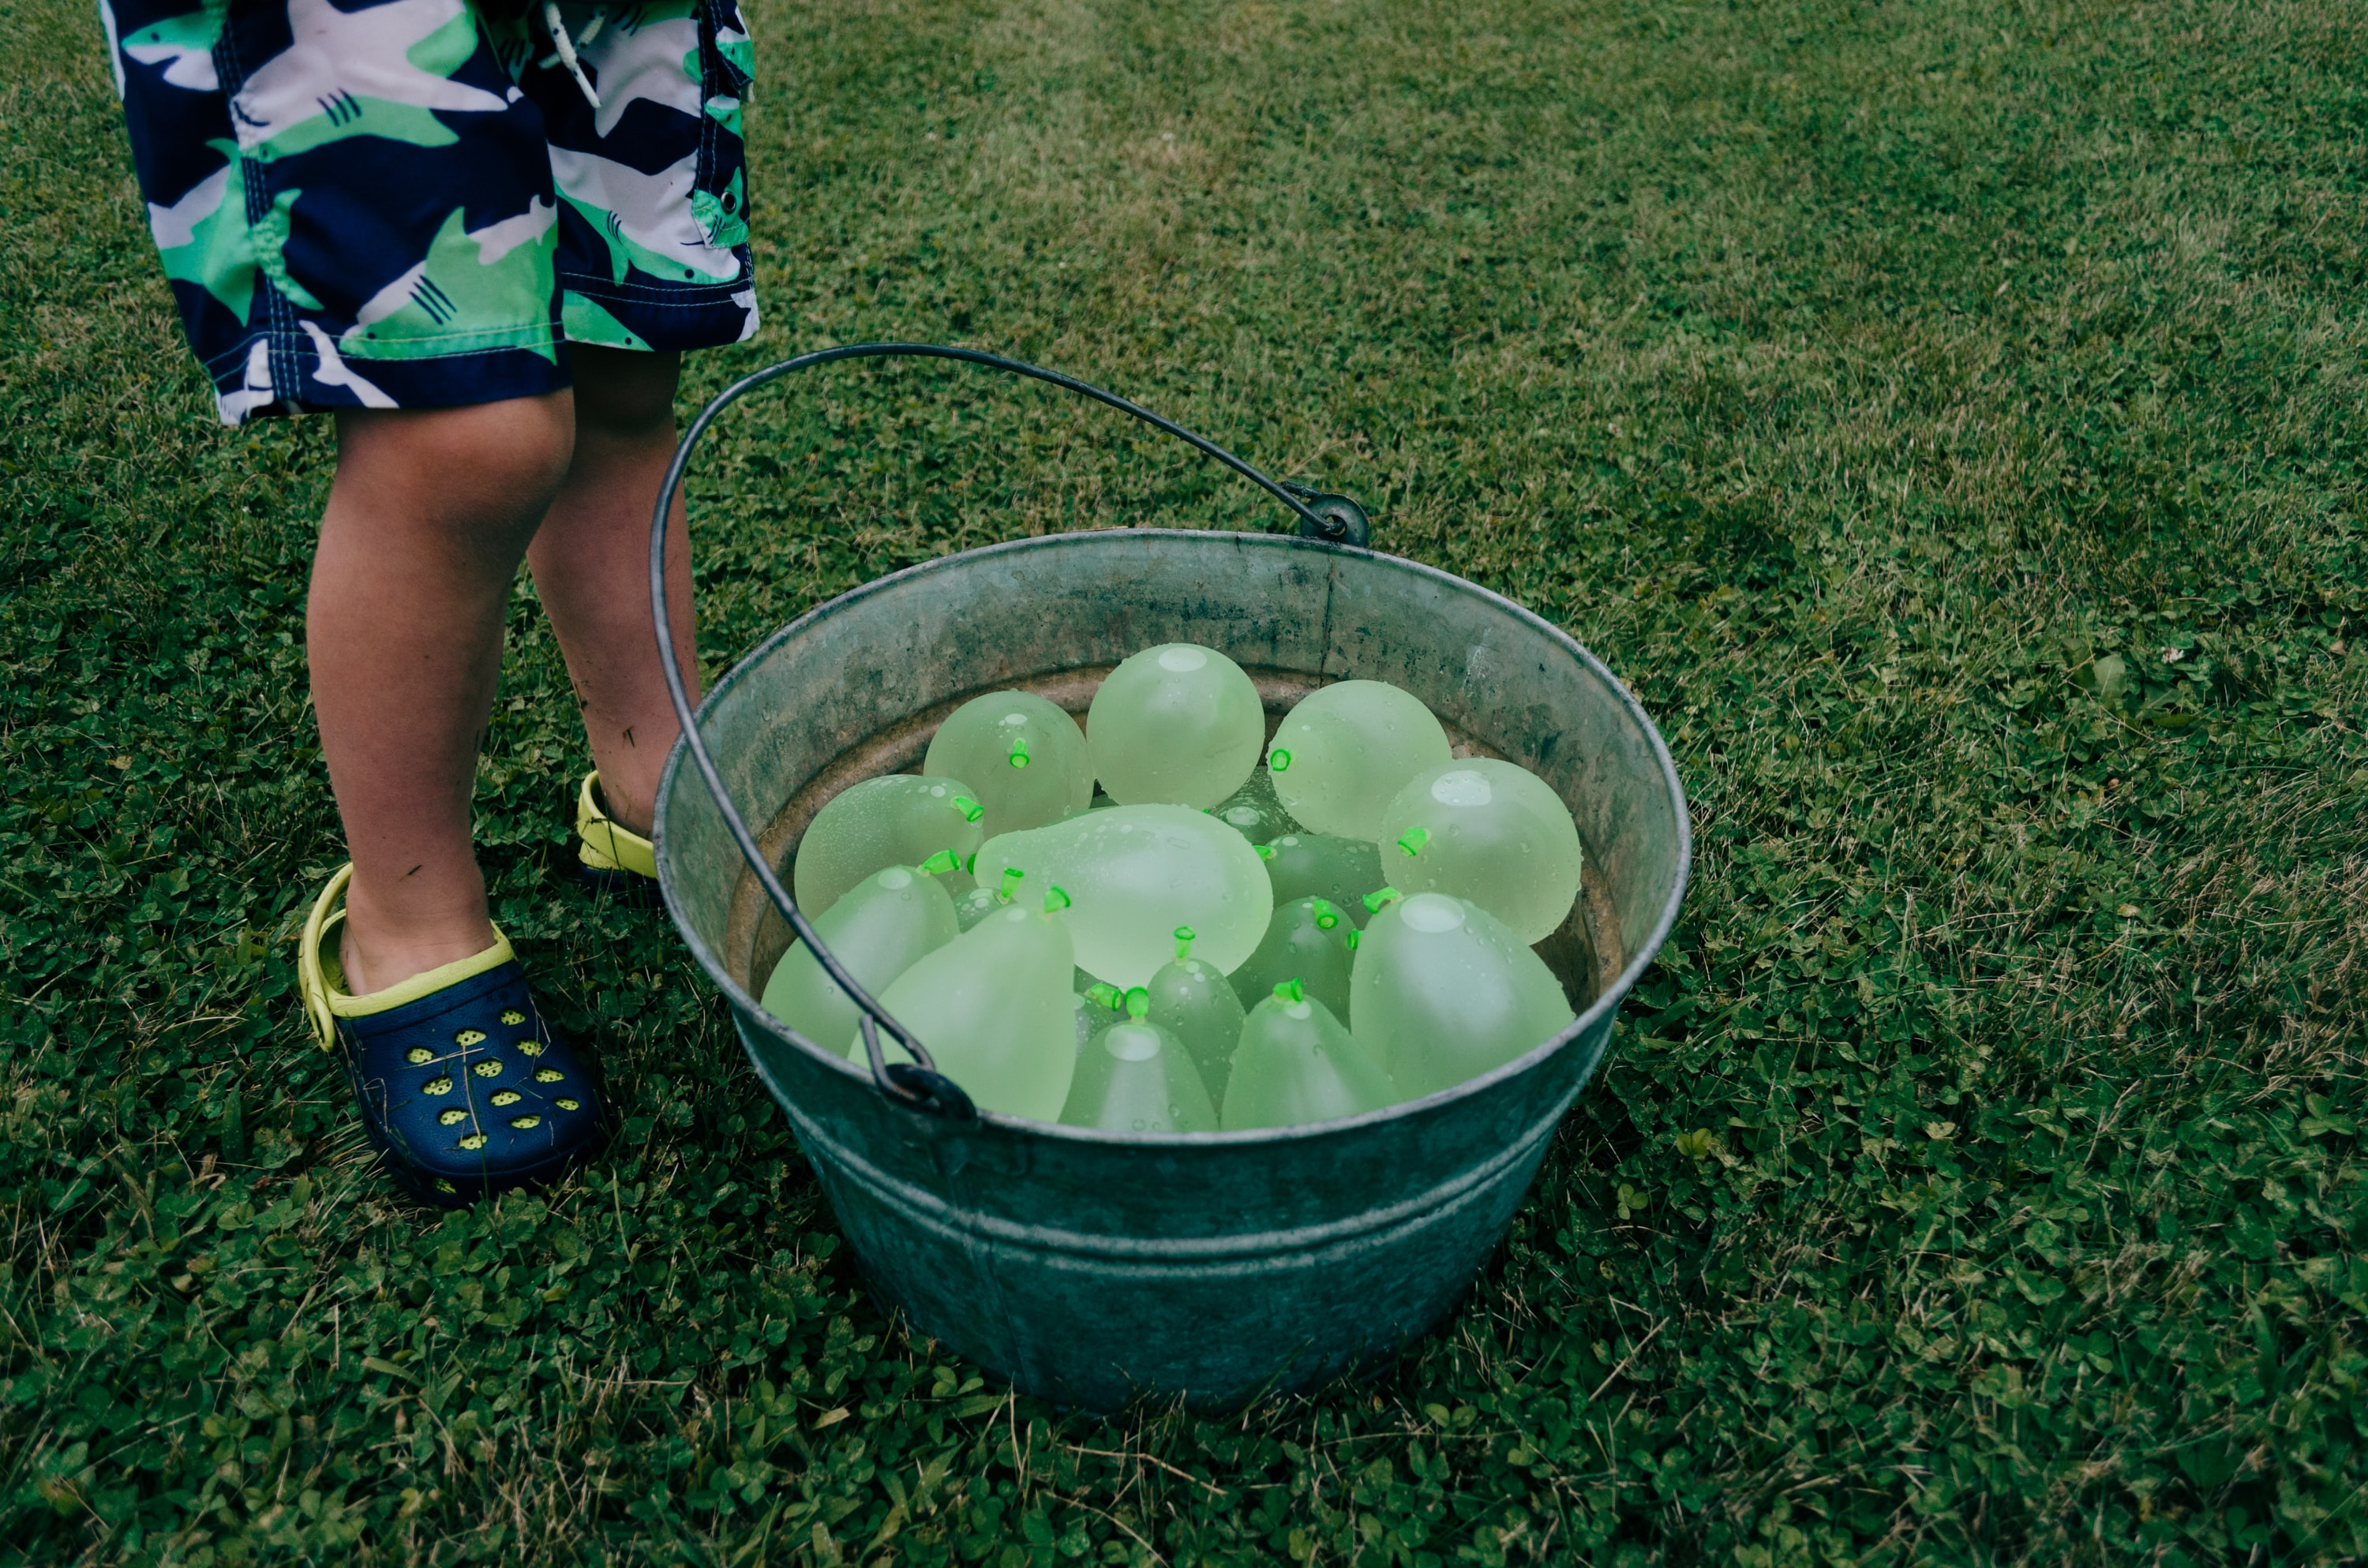 green balloons on gray stainless steel bucket